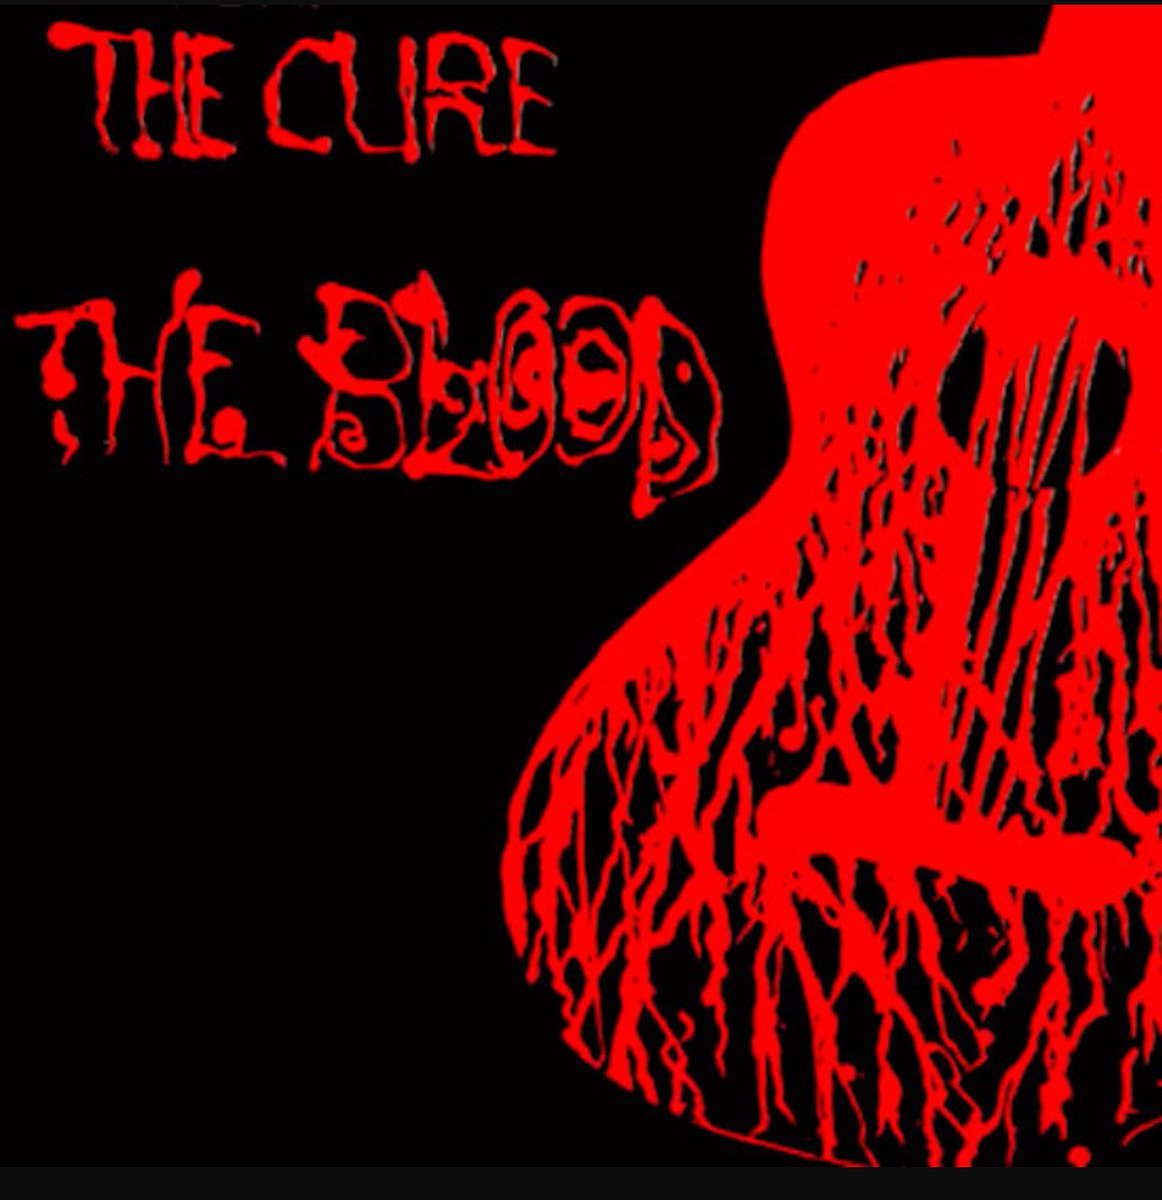 Hello Dee &amp; everybody:Here comes the cure:I&#39;m paralyzed by the blood of Christ... #thecure #theblood  https:// youtu.be/4PgWNRSHQ8k  &nbsp;   @BarbieUniverse<br>http://pic.twitter.com/DEjTxZWtgq